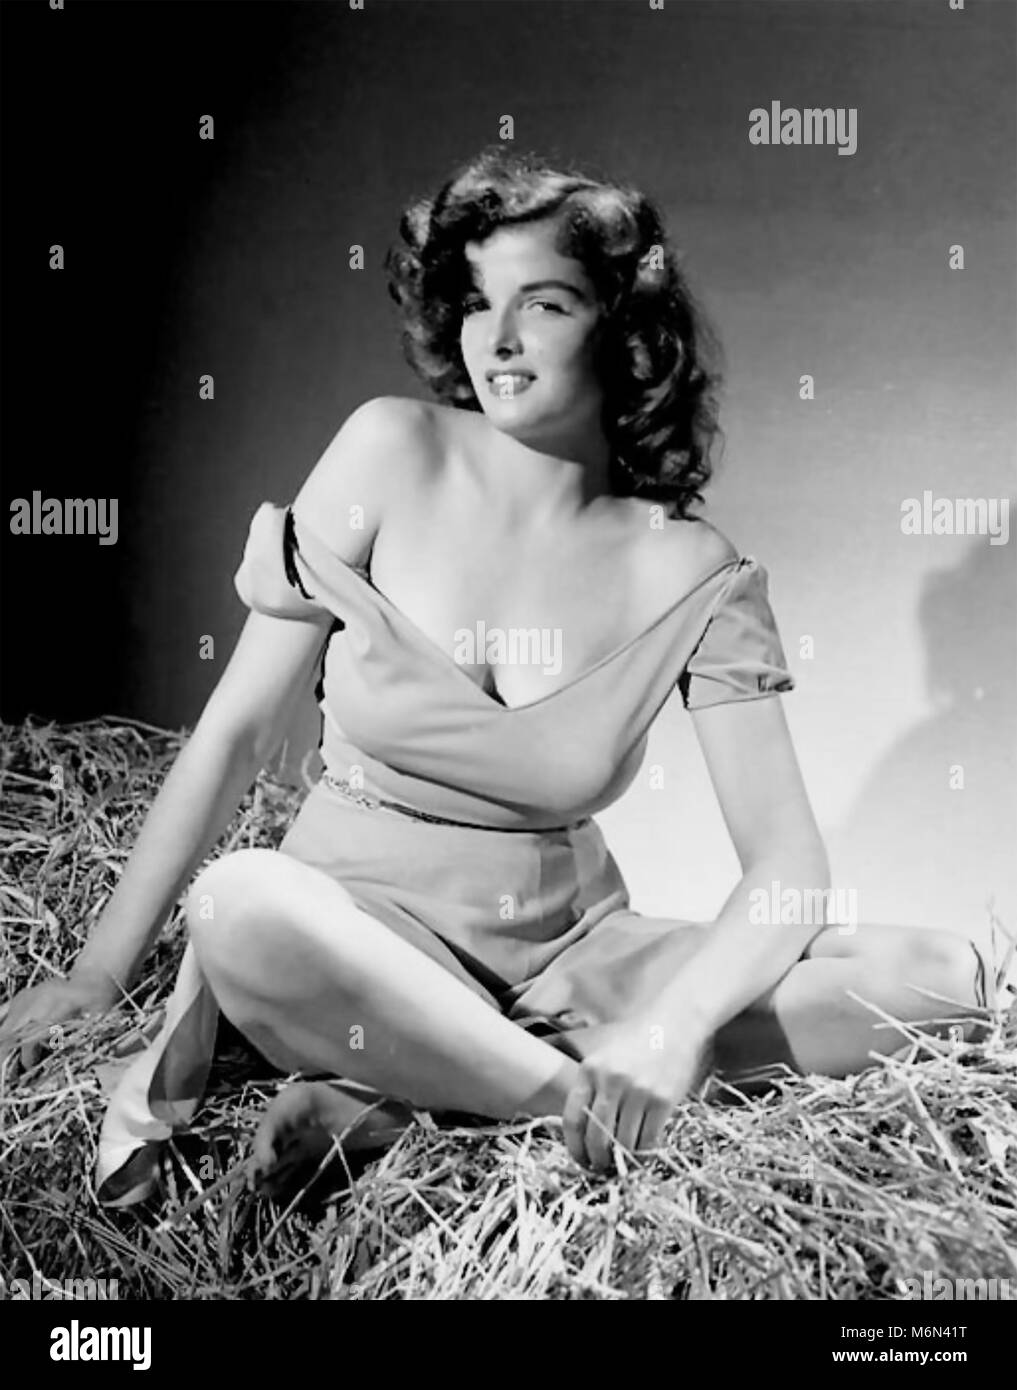 THE OUTLAW 1943 United Artists film with Jane Russell - Stock Image